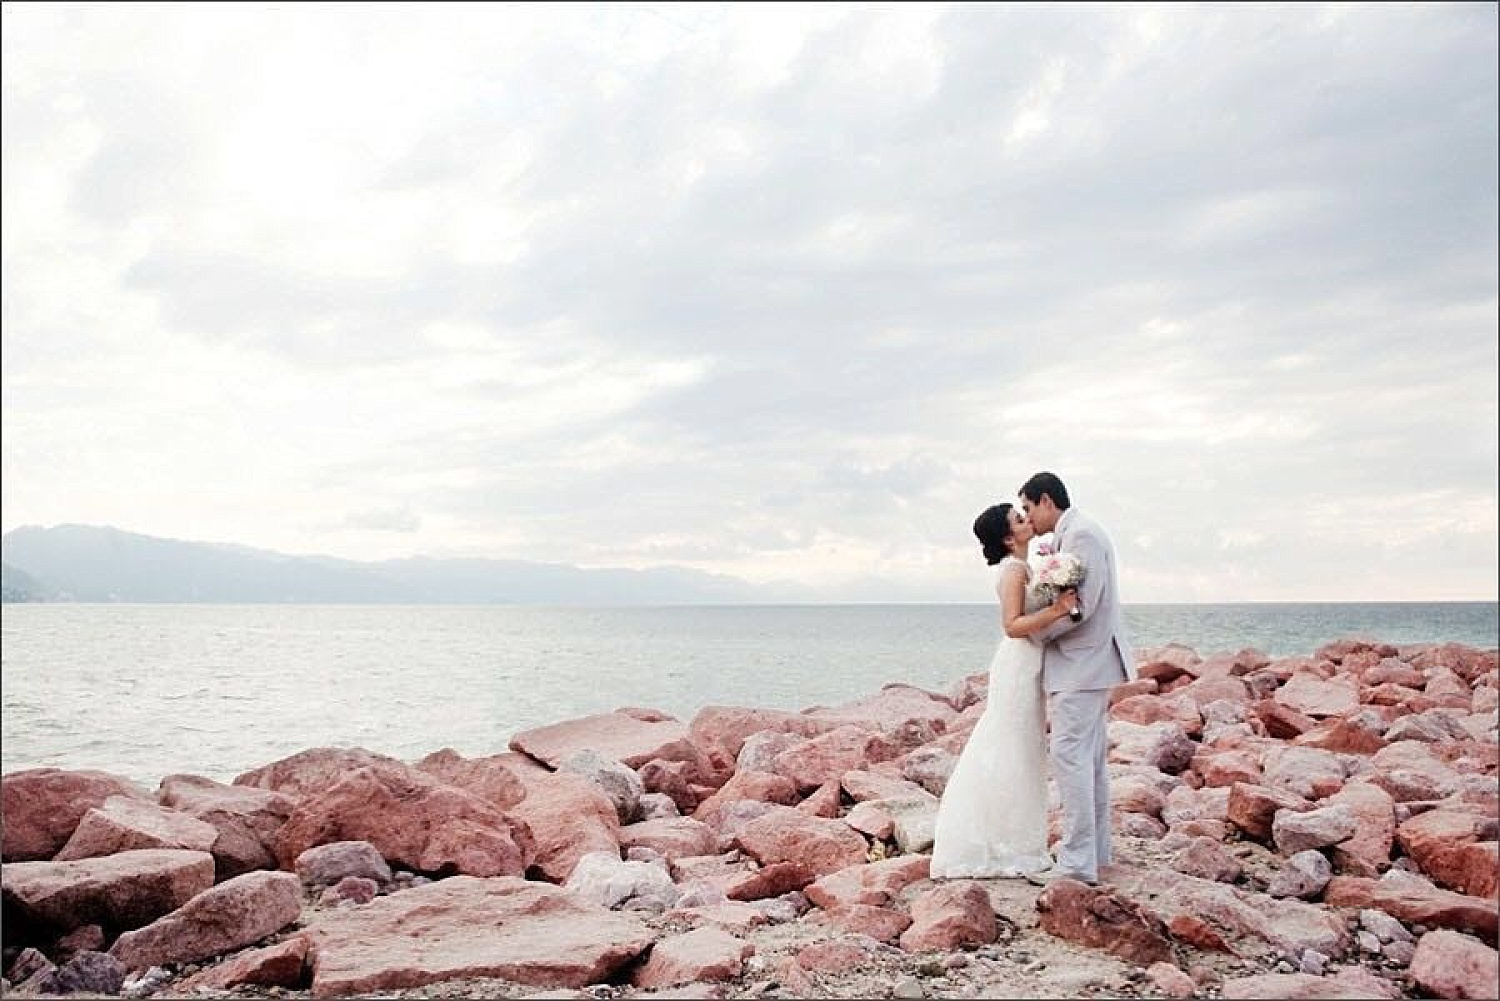 How to Photograph Destination Weddings Successfully